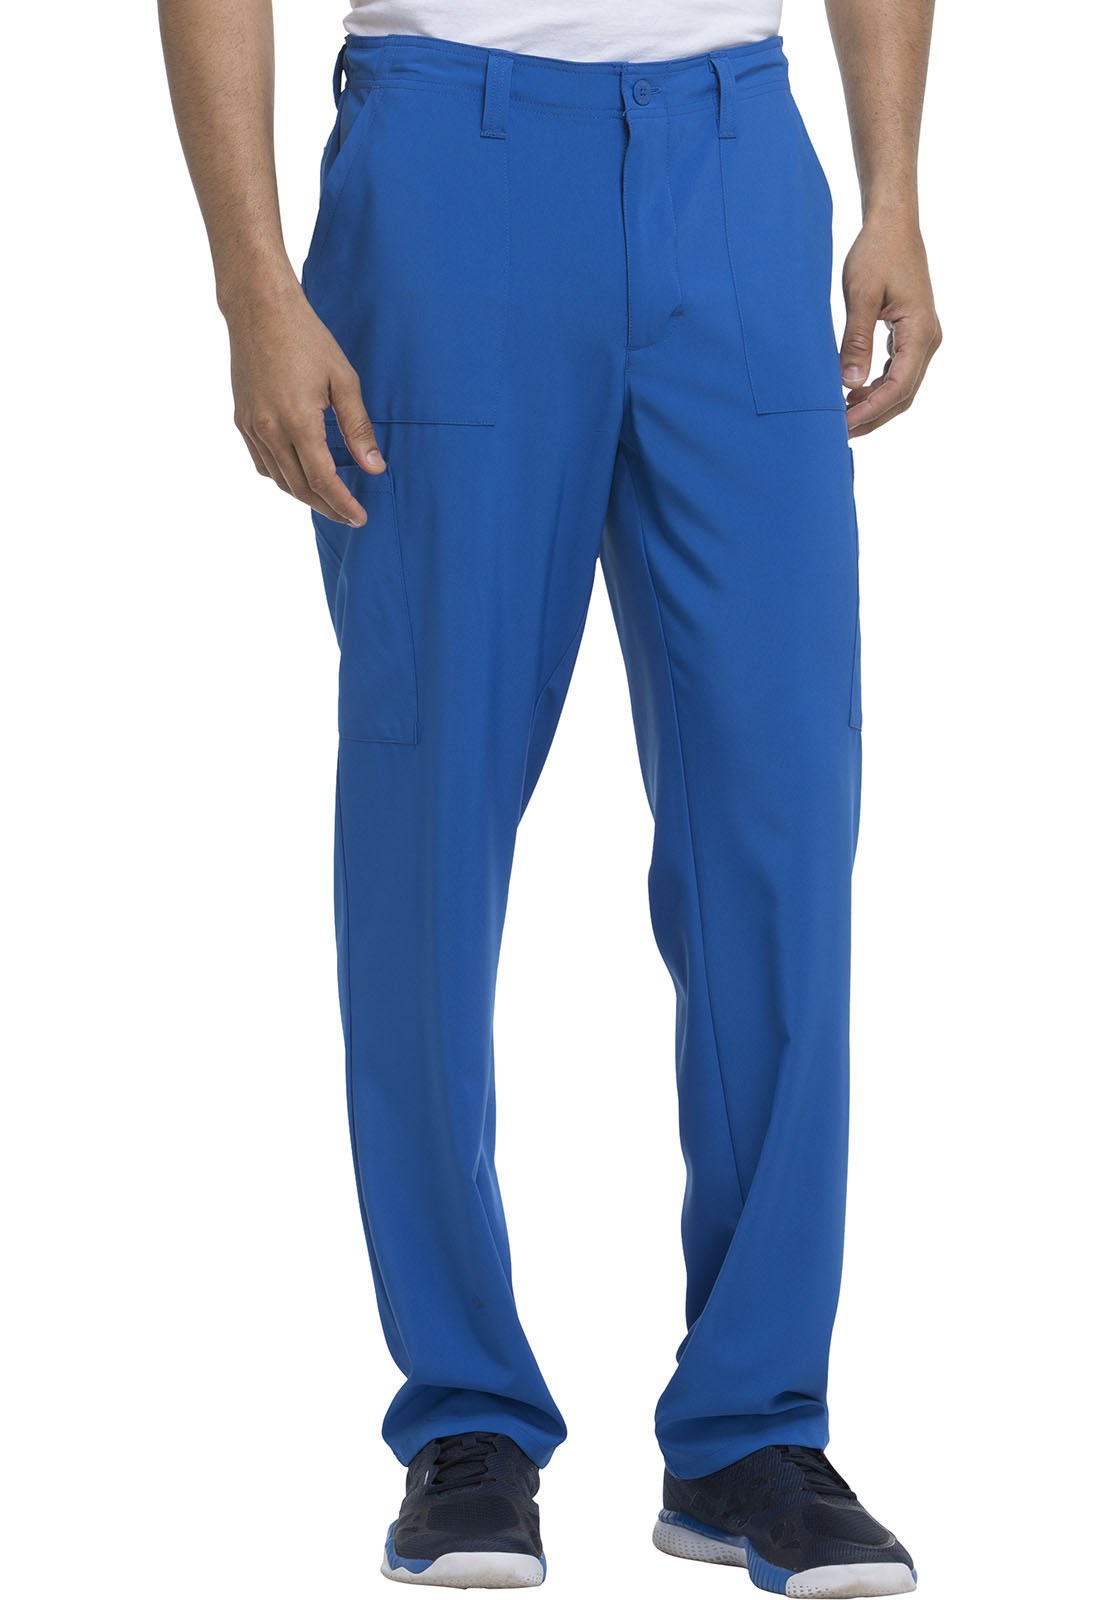 ba93b4cbe9f EDS Essentials Men's Natural Rise Drawstring Pant in Royal DK015T ...